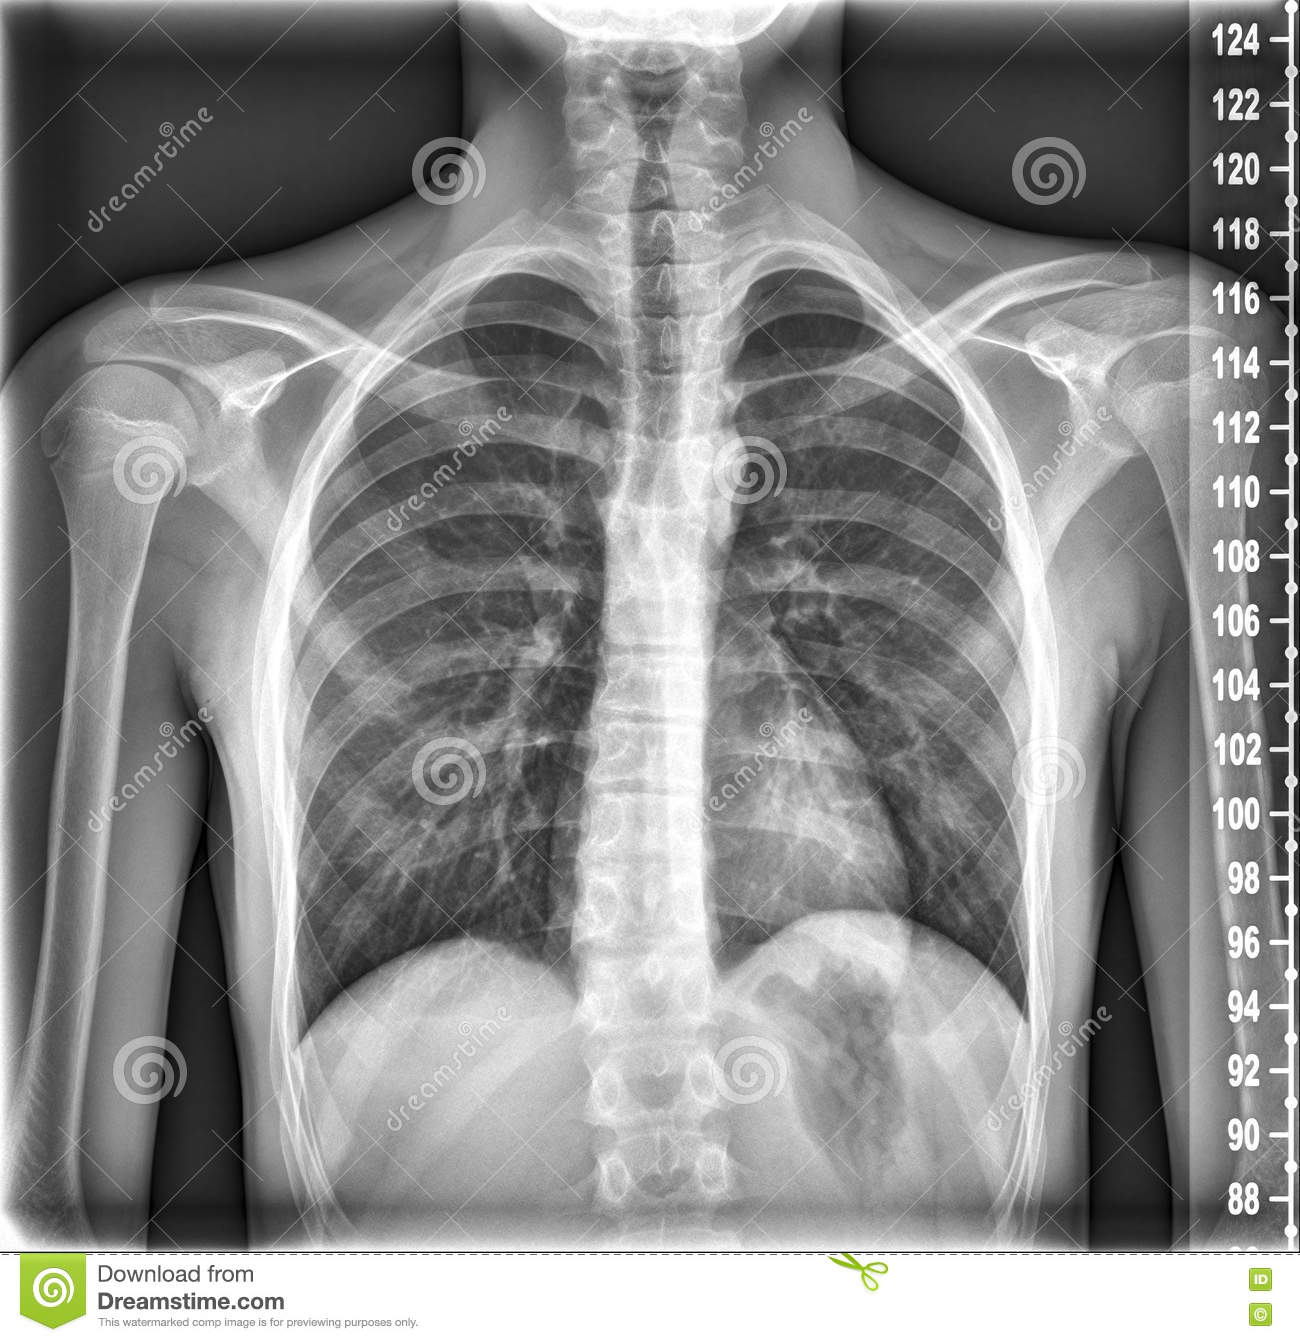 Chest Medical Xray, Lungs and Heart View